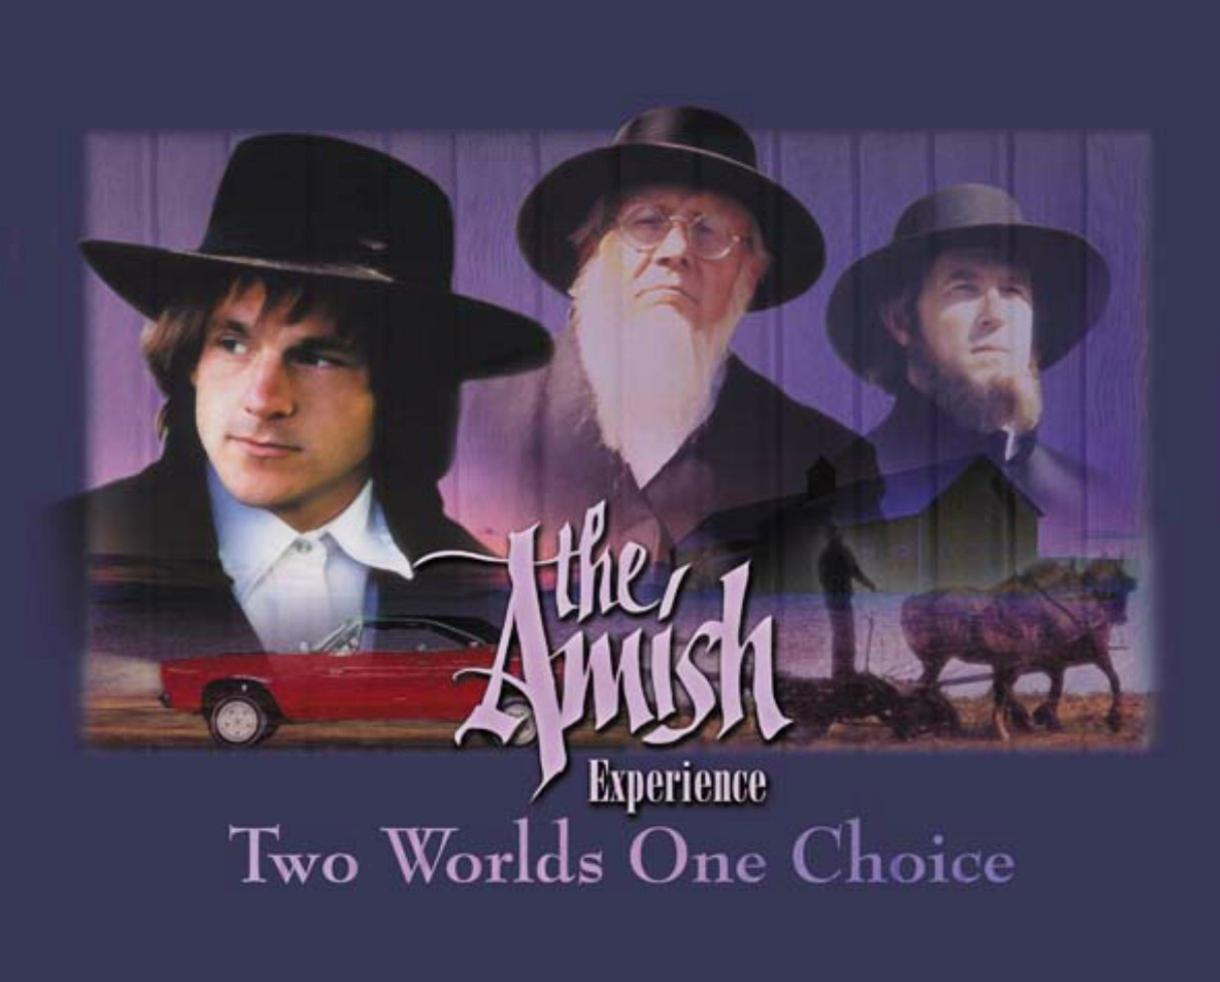 One CHILD Ticket to Jacob's Choice Theatre Show at The Amish Experience